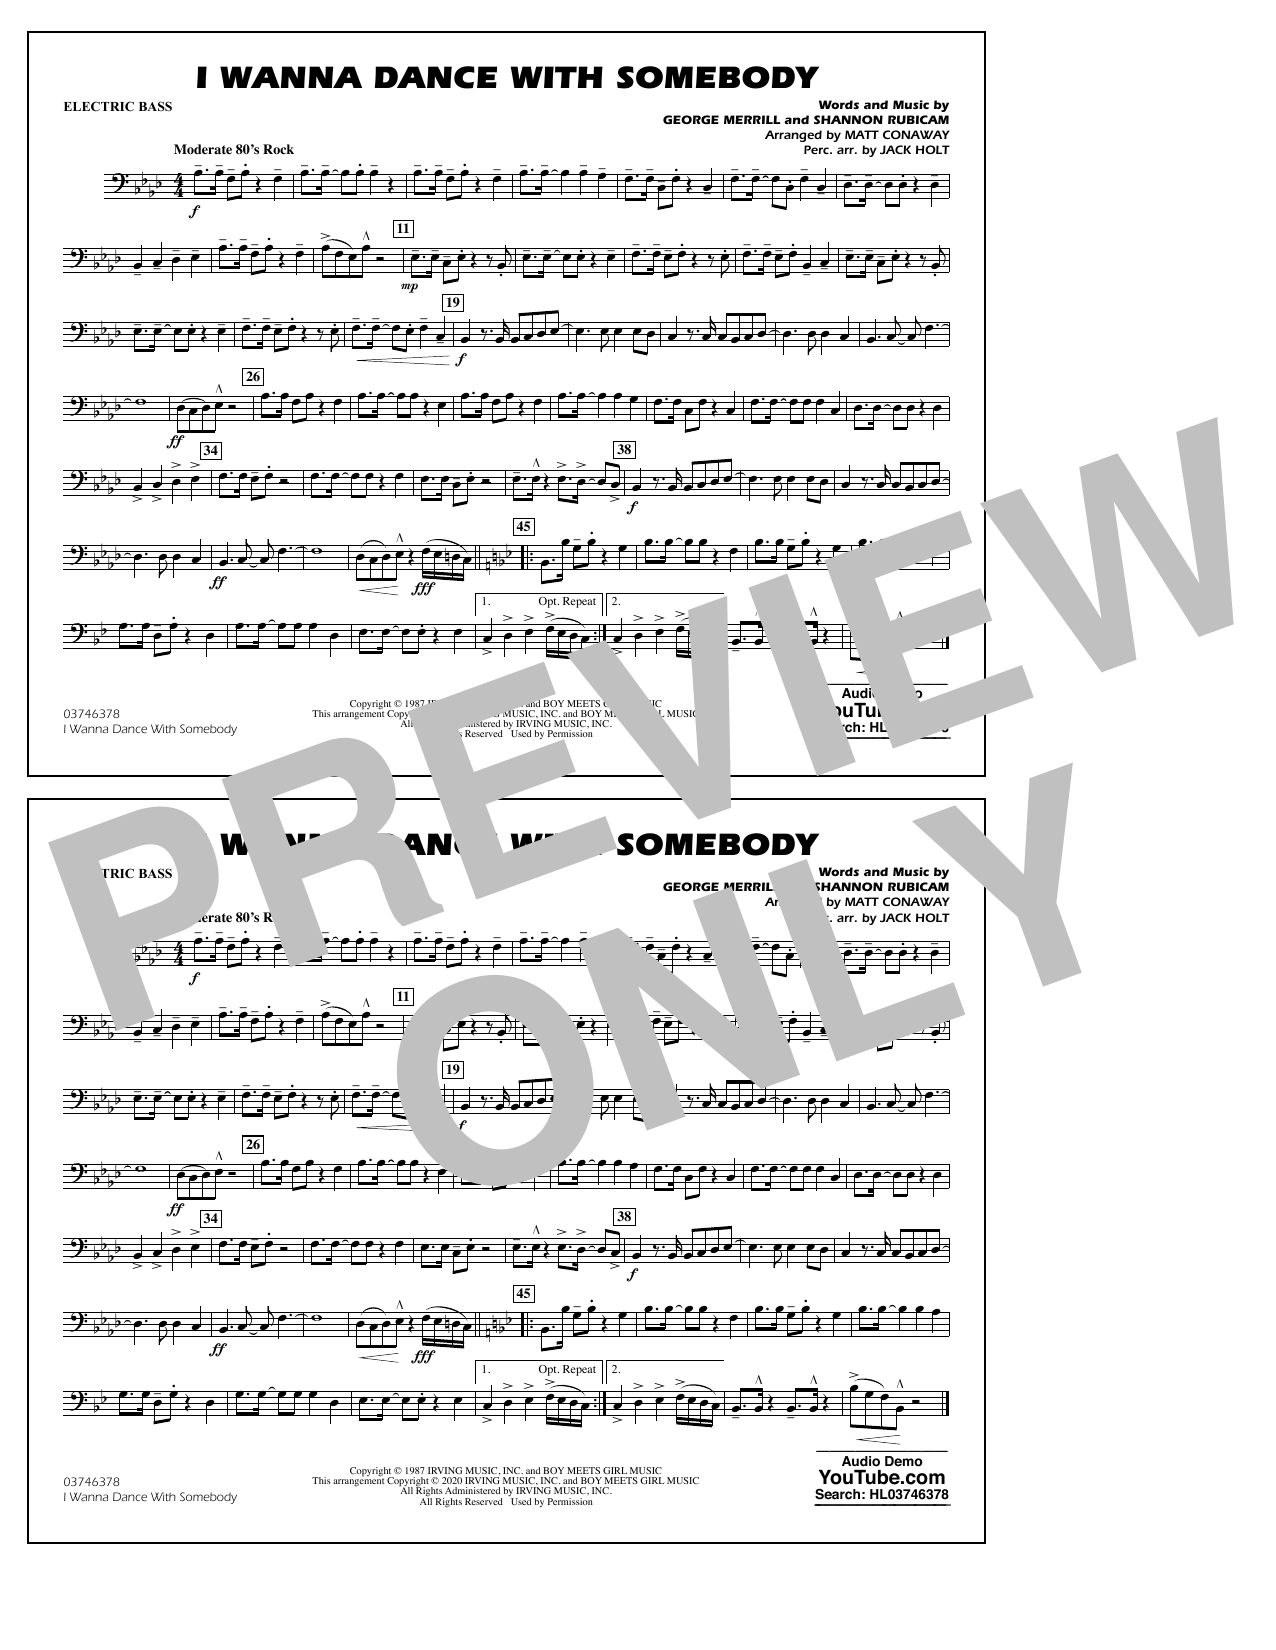 I Wanna Dance with Somebody (arr. Conaway and Holt) - Electric Bass Sheet Music